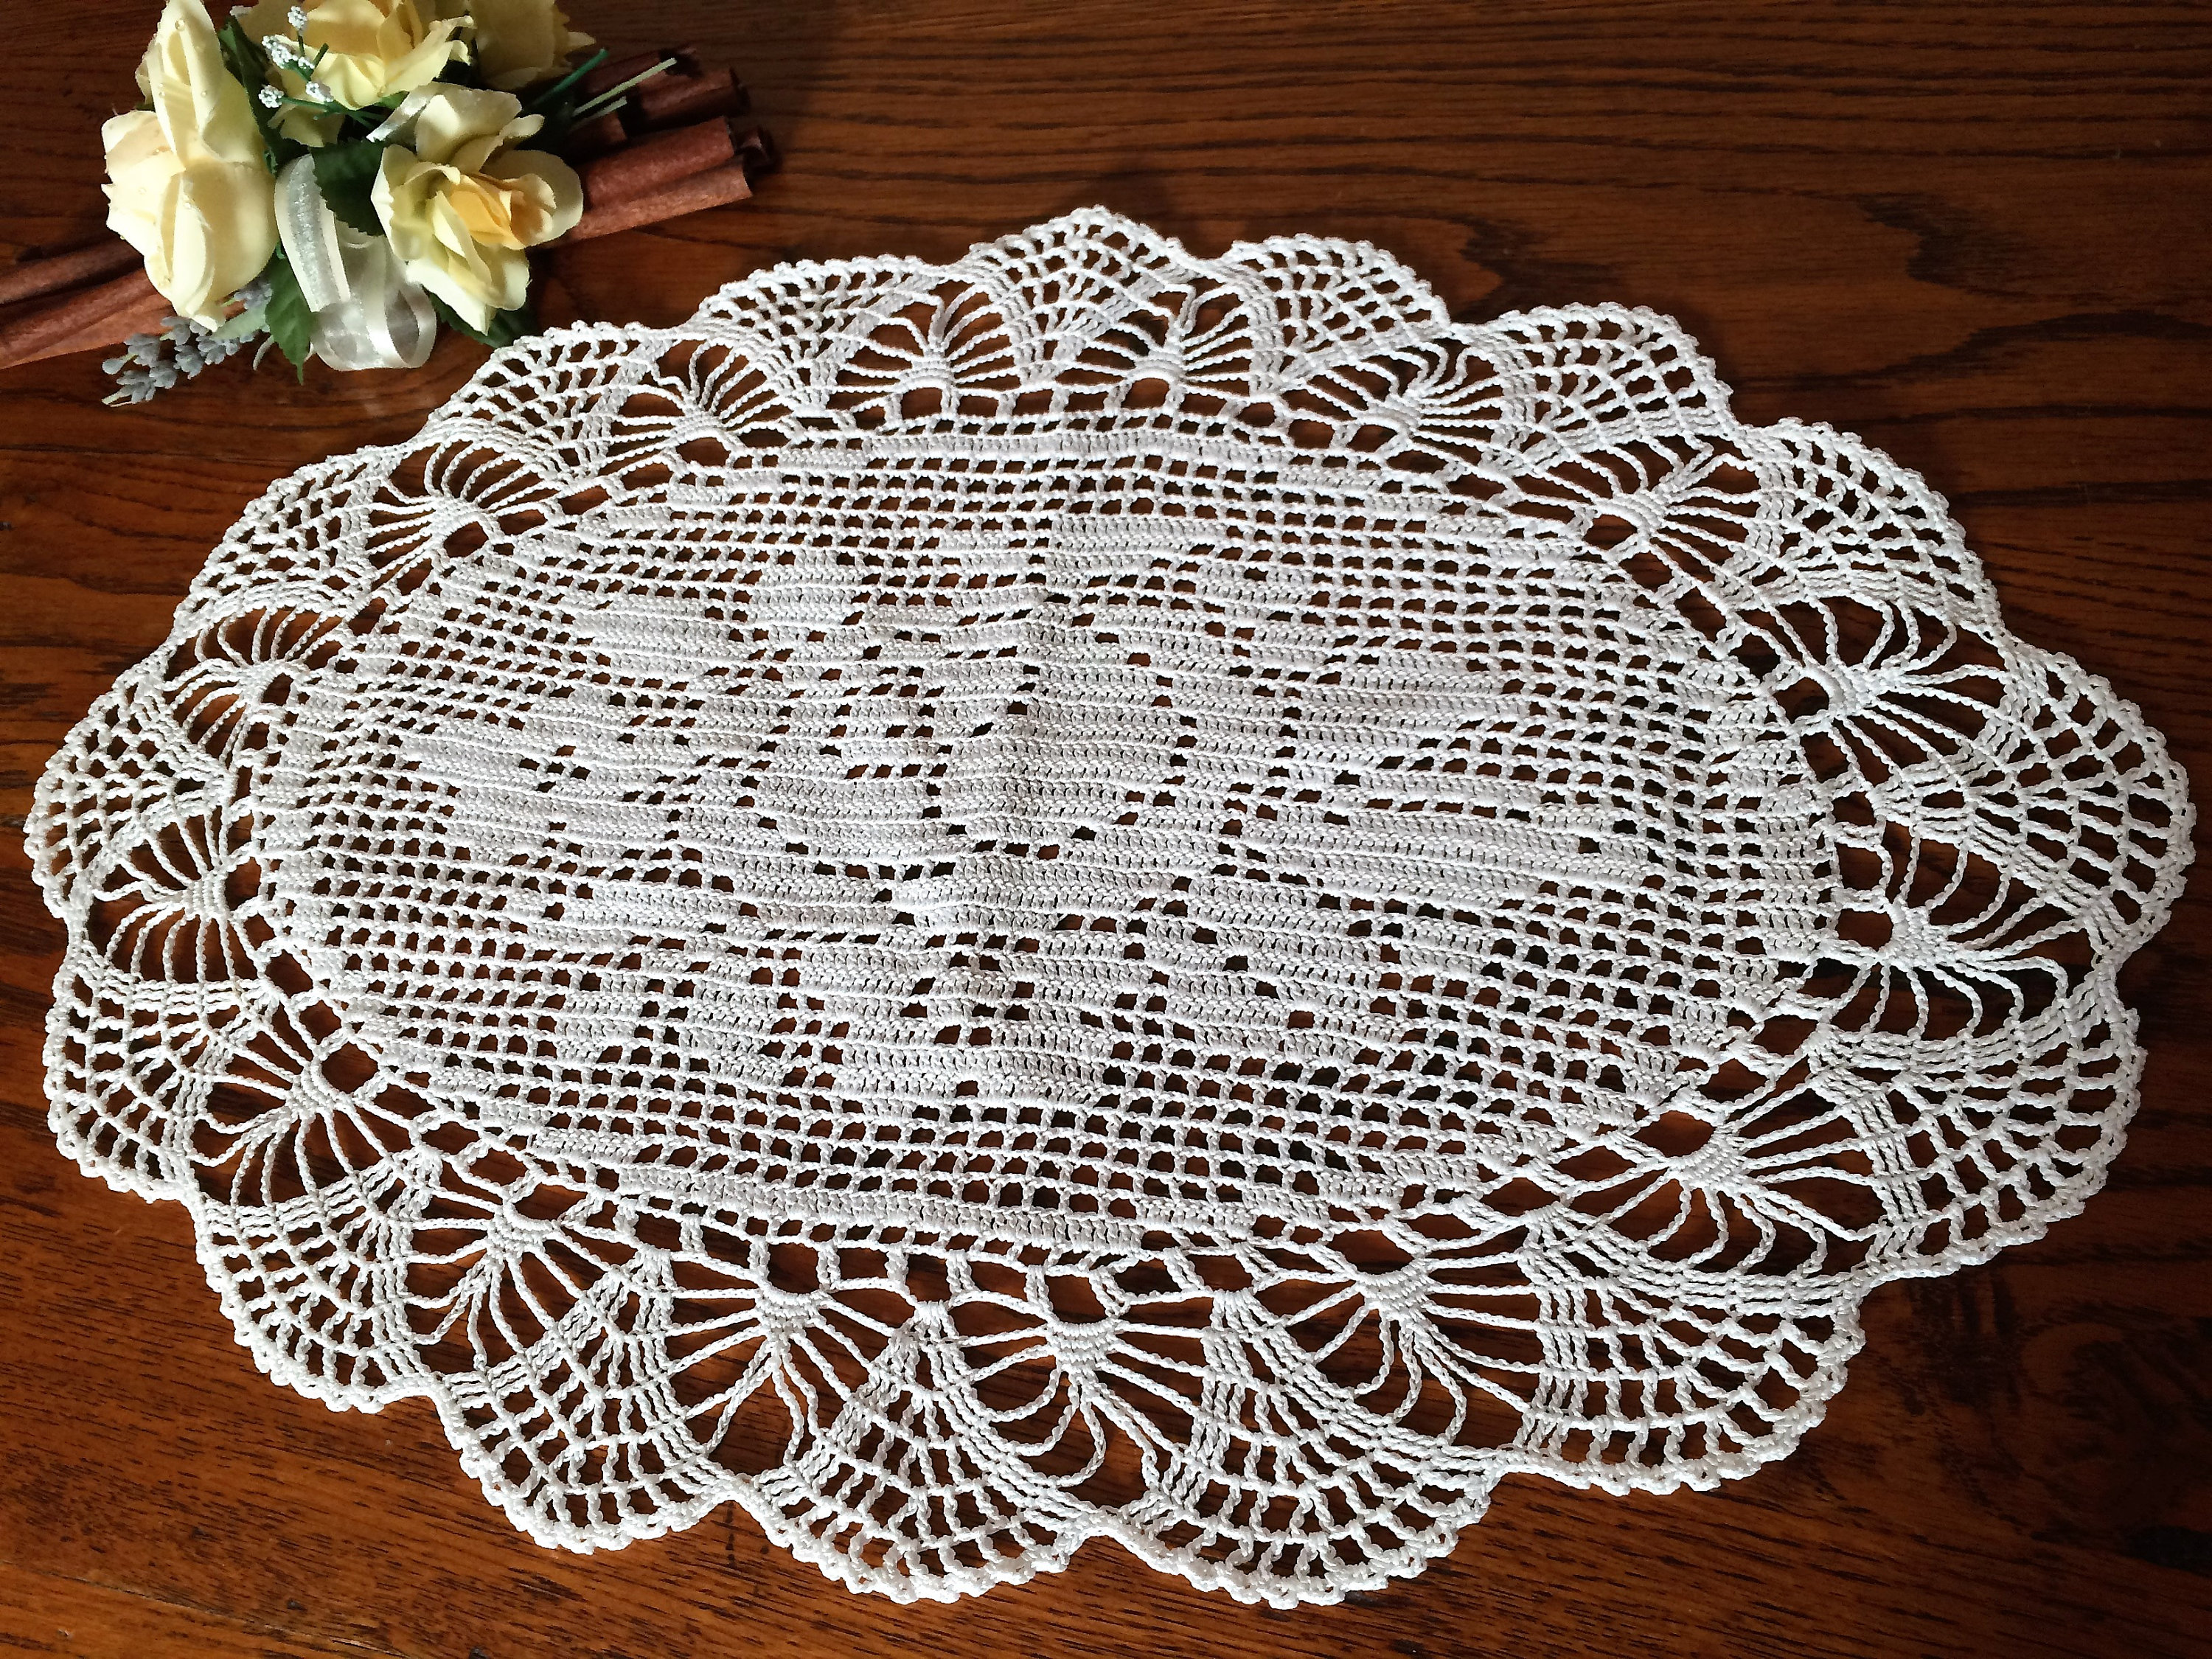 Vintage Lace Oval Doily Or Table Runner Oval Filet Crochet Doily